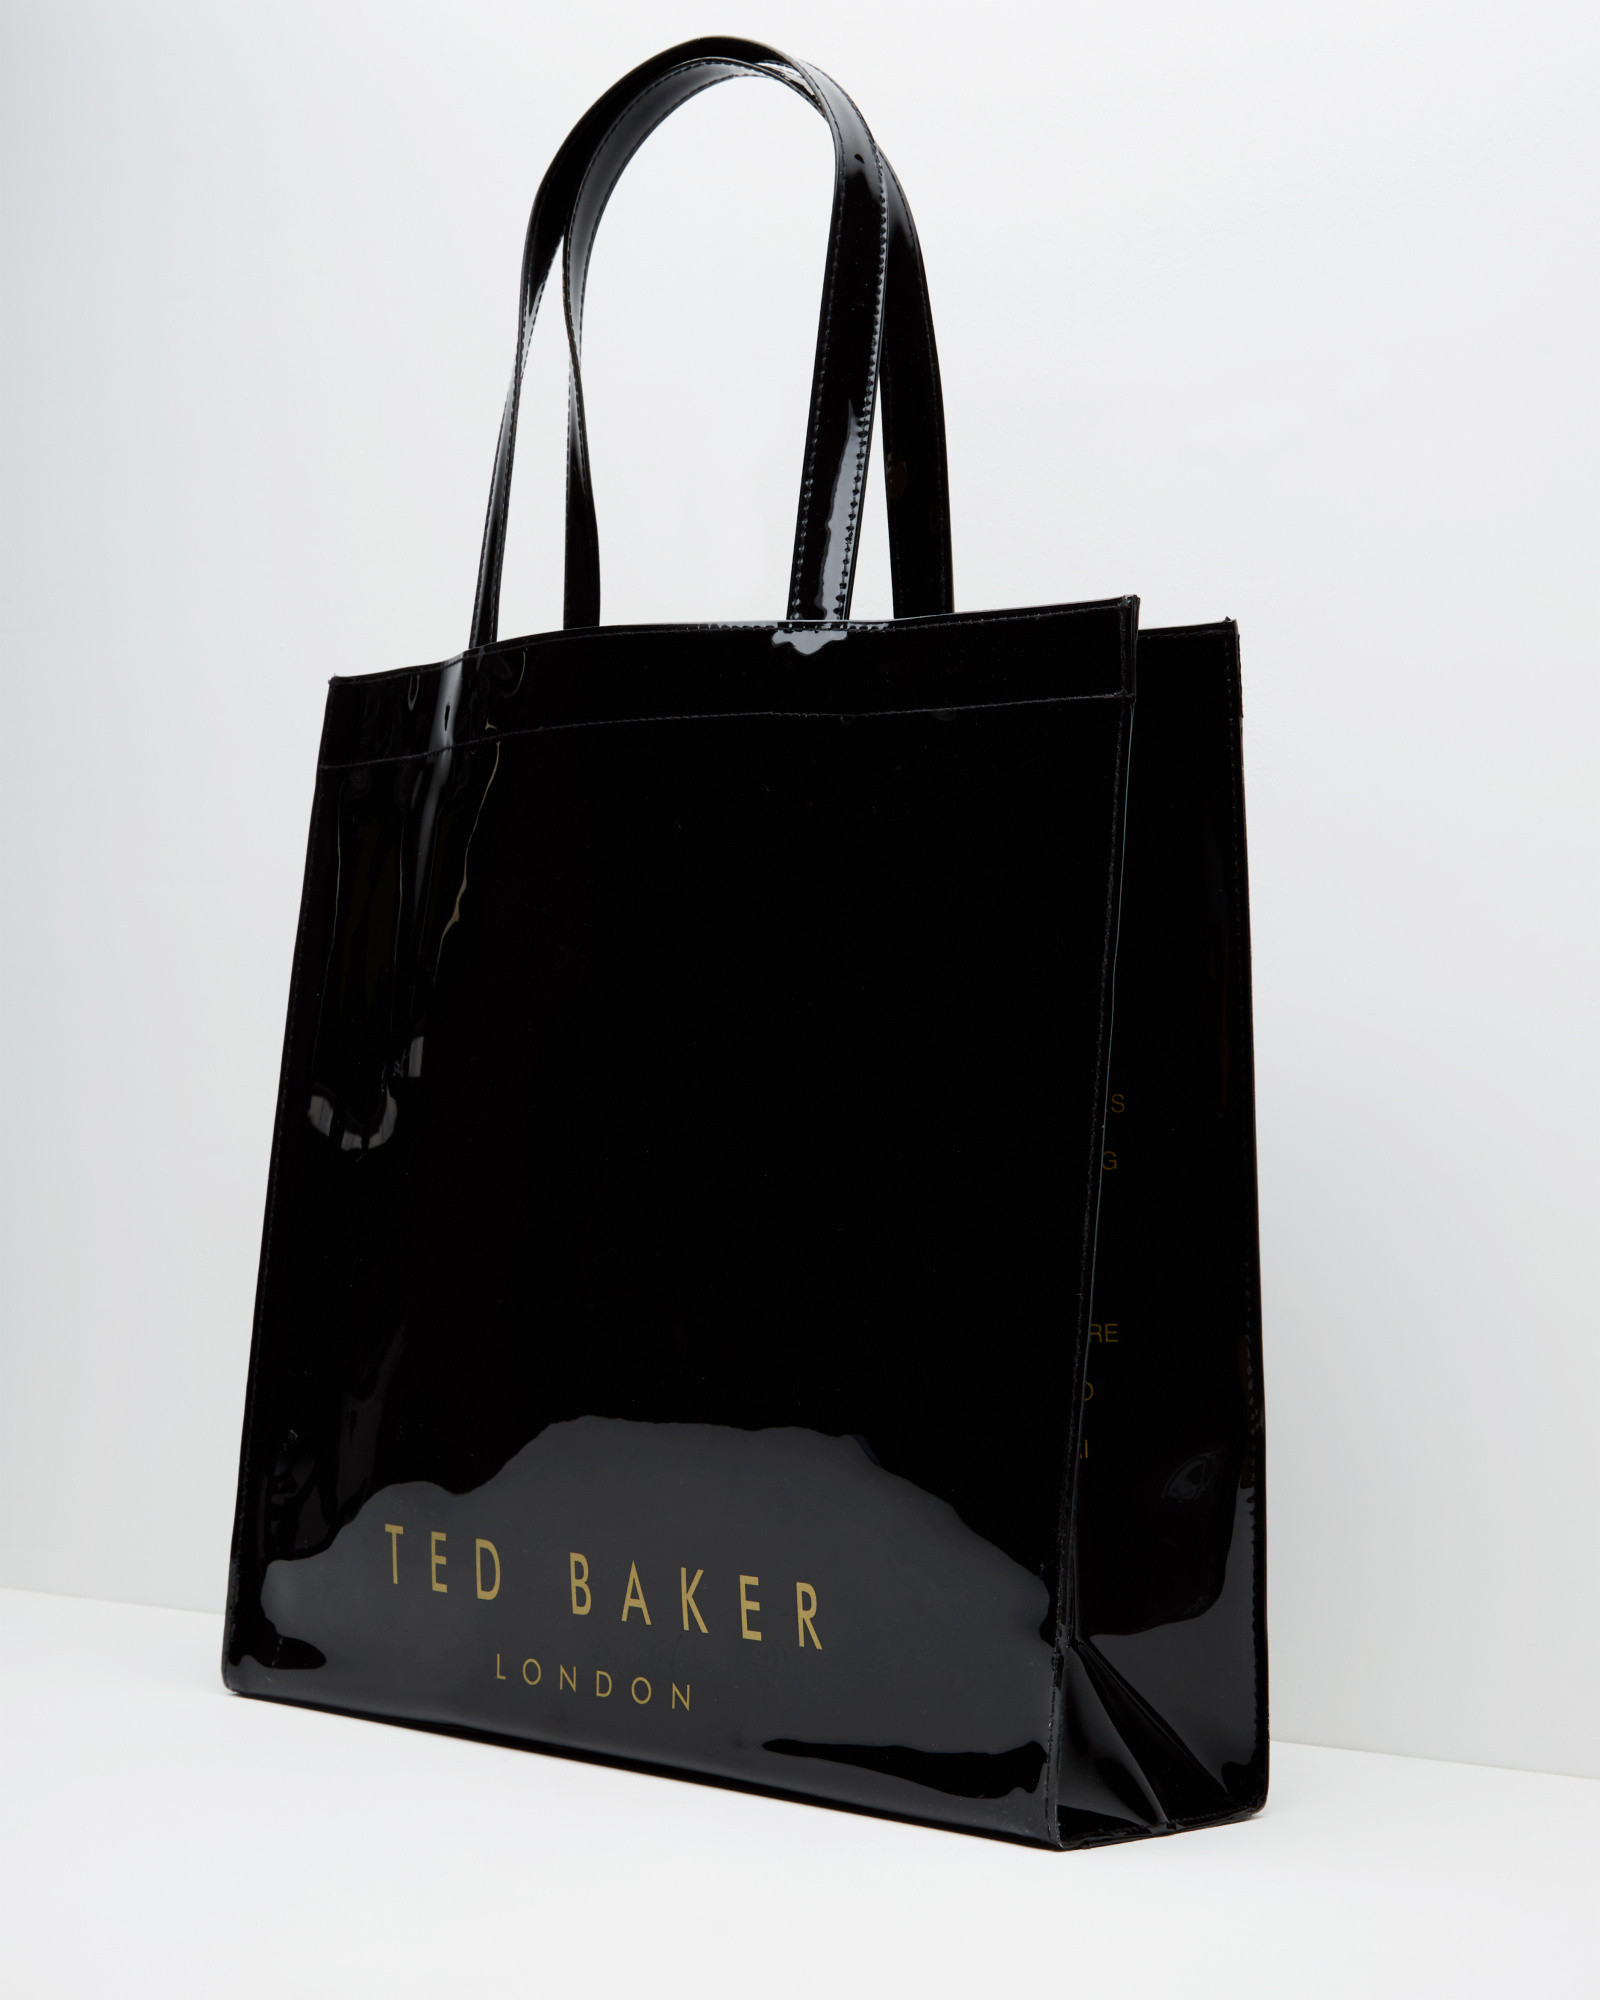 adf72a93179 Ted Baker Bow Detail Large Shopper Bag in Black - Lyst